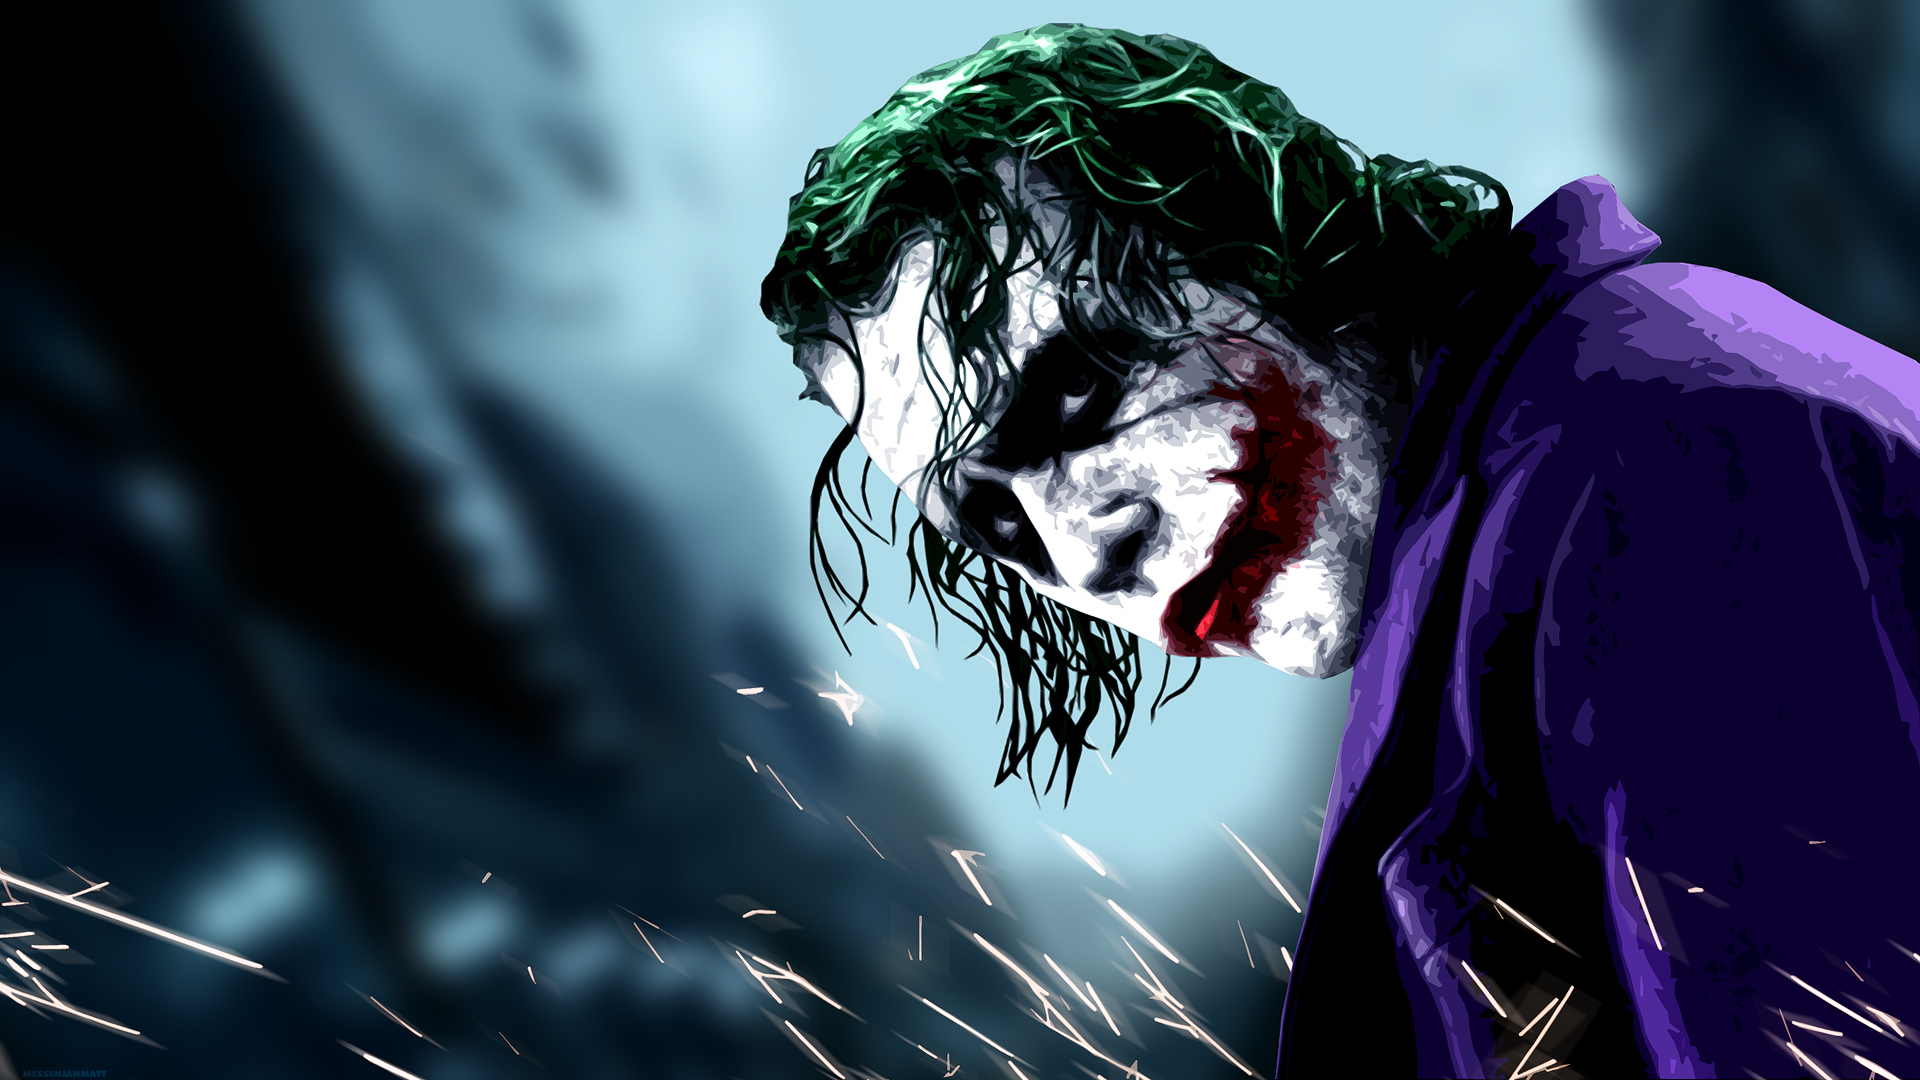 Joker HD Wallpaper Pictures Cool Wallpapers